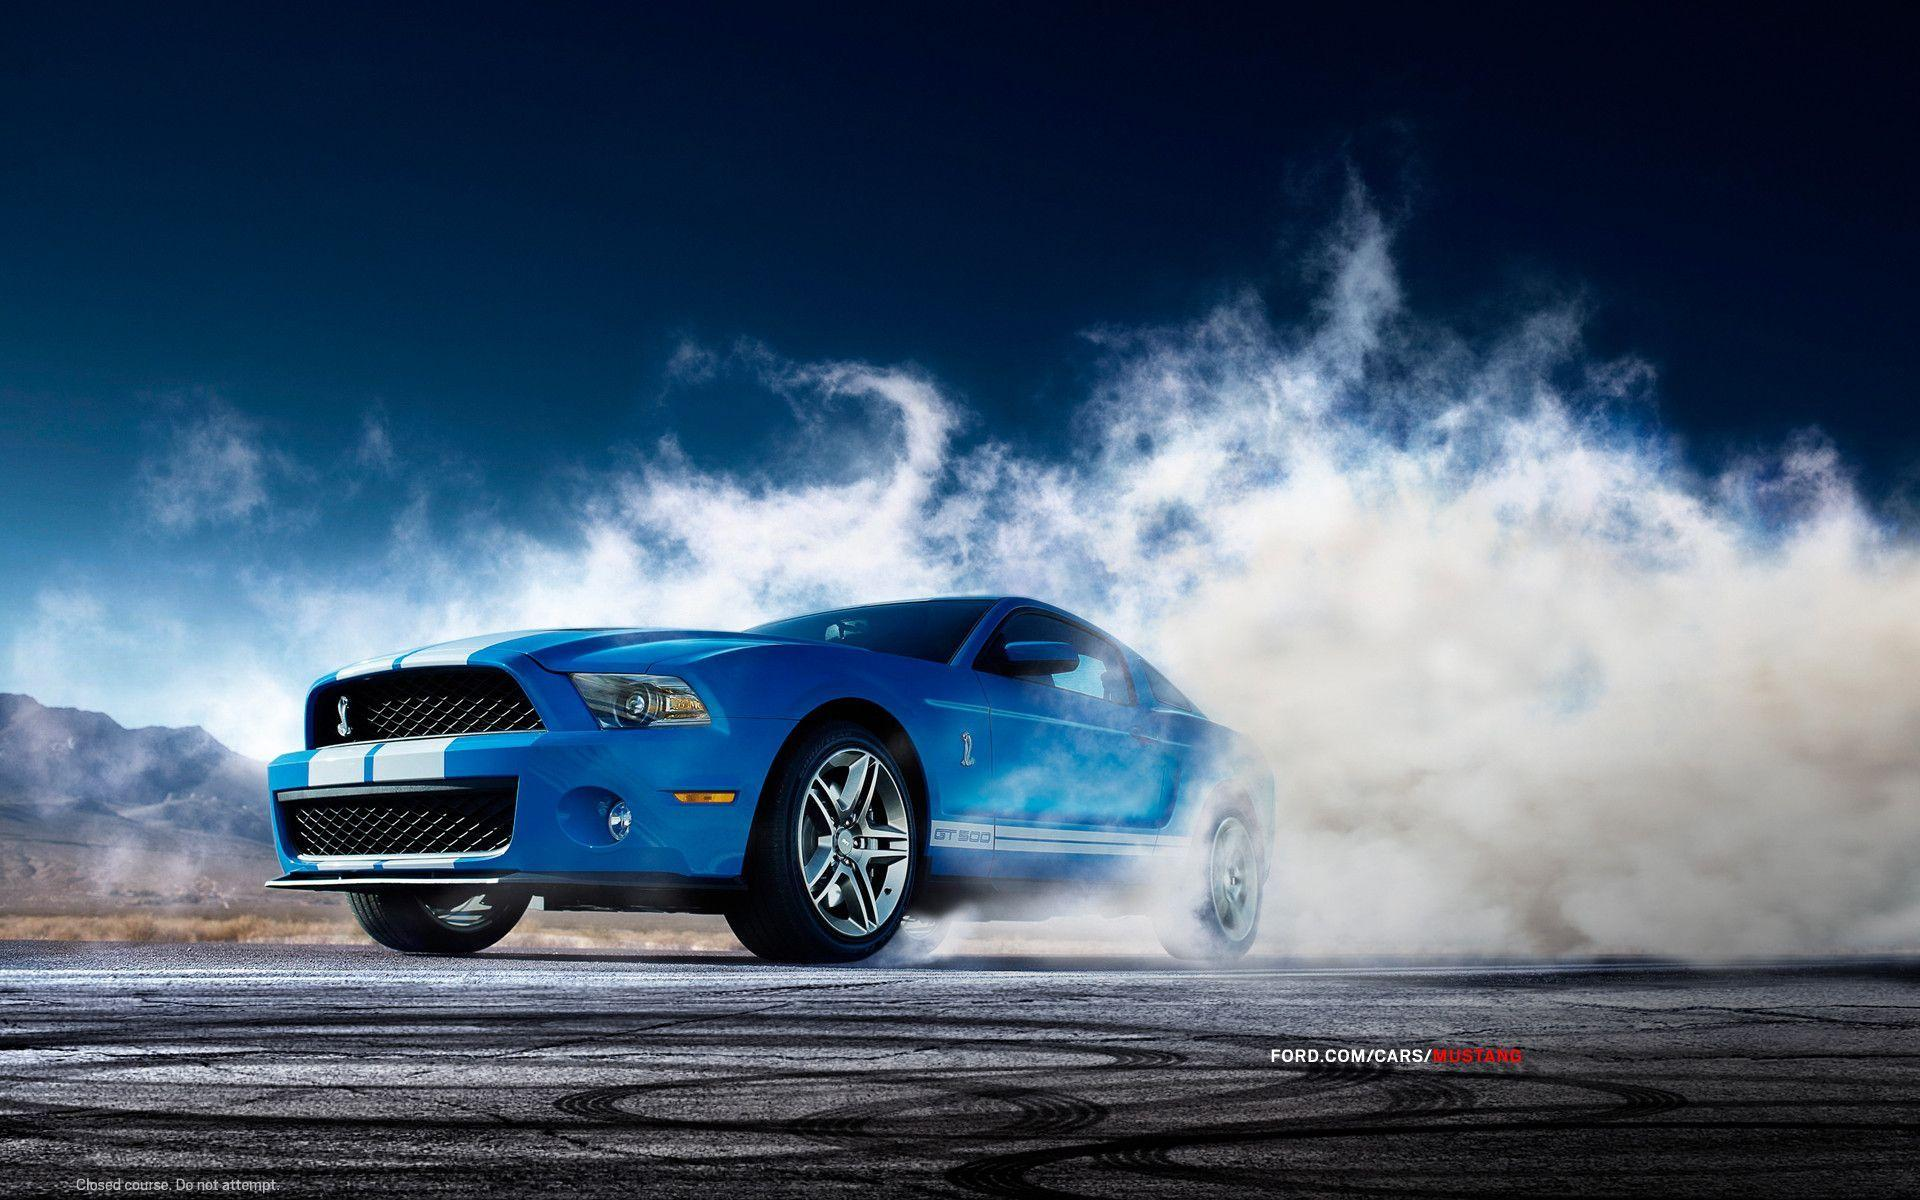 Mustang Shelby Wallpapers - Full HD wallpaper search